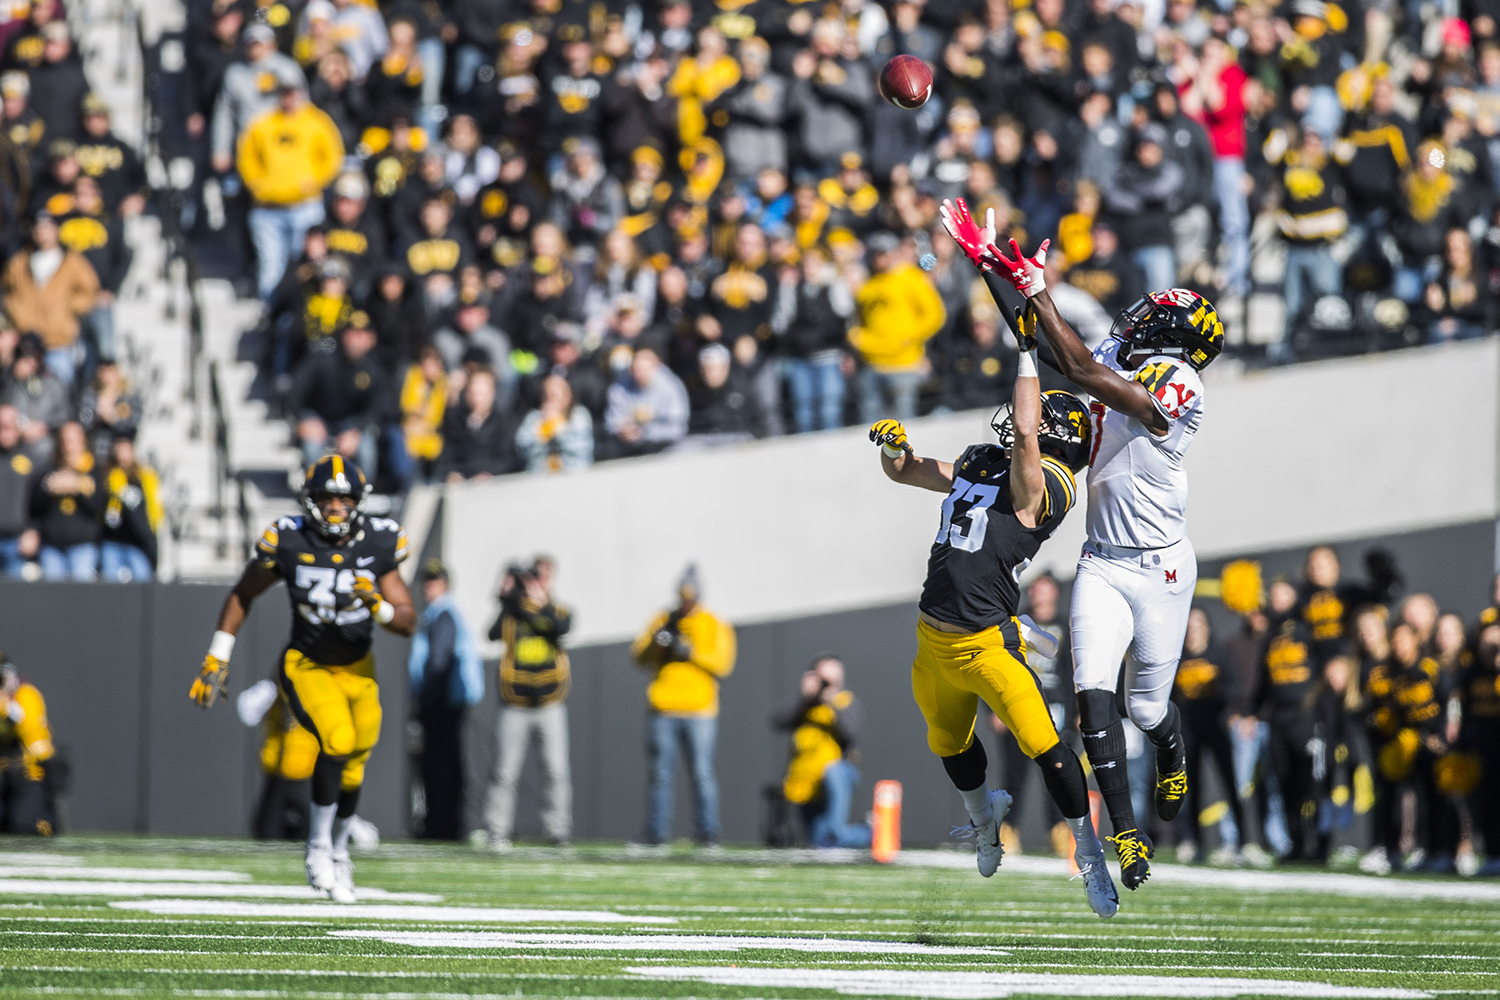 Iowa+defensive+back+Riley+Moss+and+Maryland+wide+receiver+Dontay+Demus+attempt+to+catch+a+Maryland+pass+during+the+Iowa%2FMaryland+homecoming+football+game+at+Kinnick+Stadium+on+Saturday%2C+October+20%2C+2018.+The+Hawkeyes+defeated+the+Terrapins%2C+23-0.+